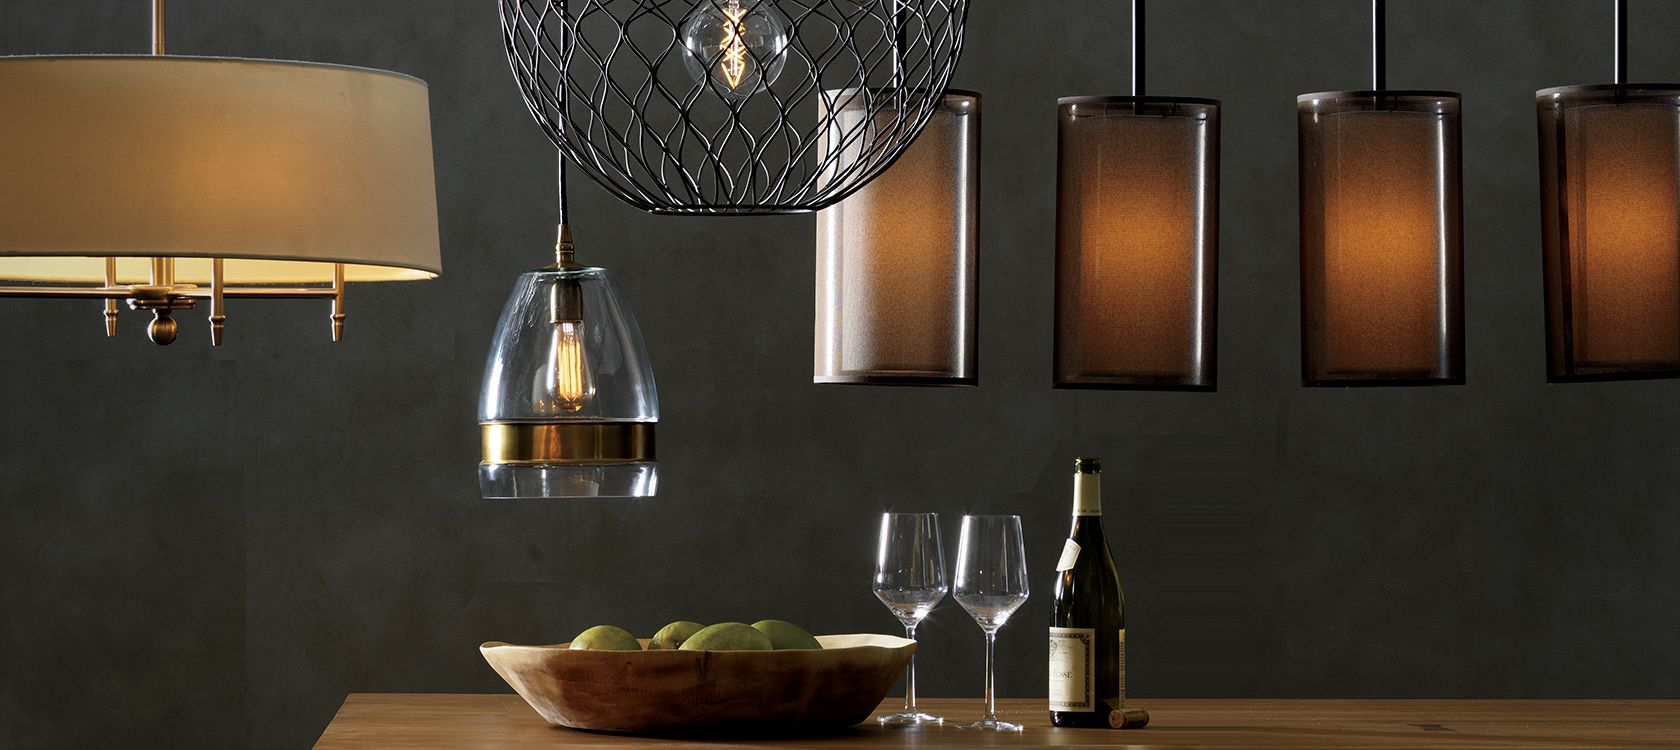 Lighting fixtures and home crate barrel